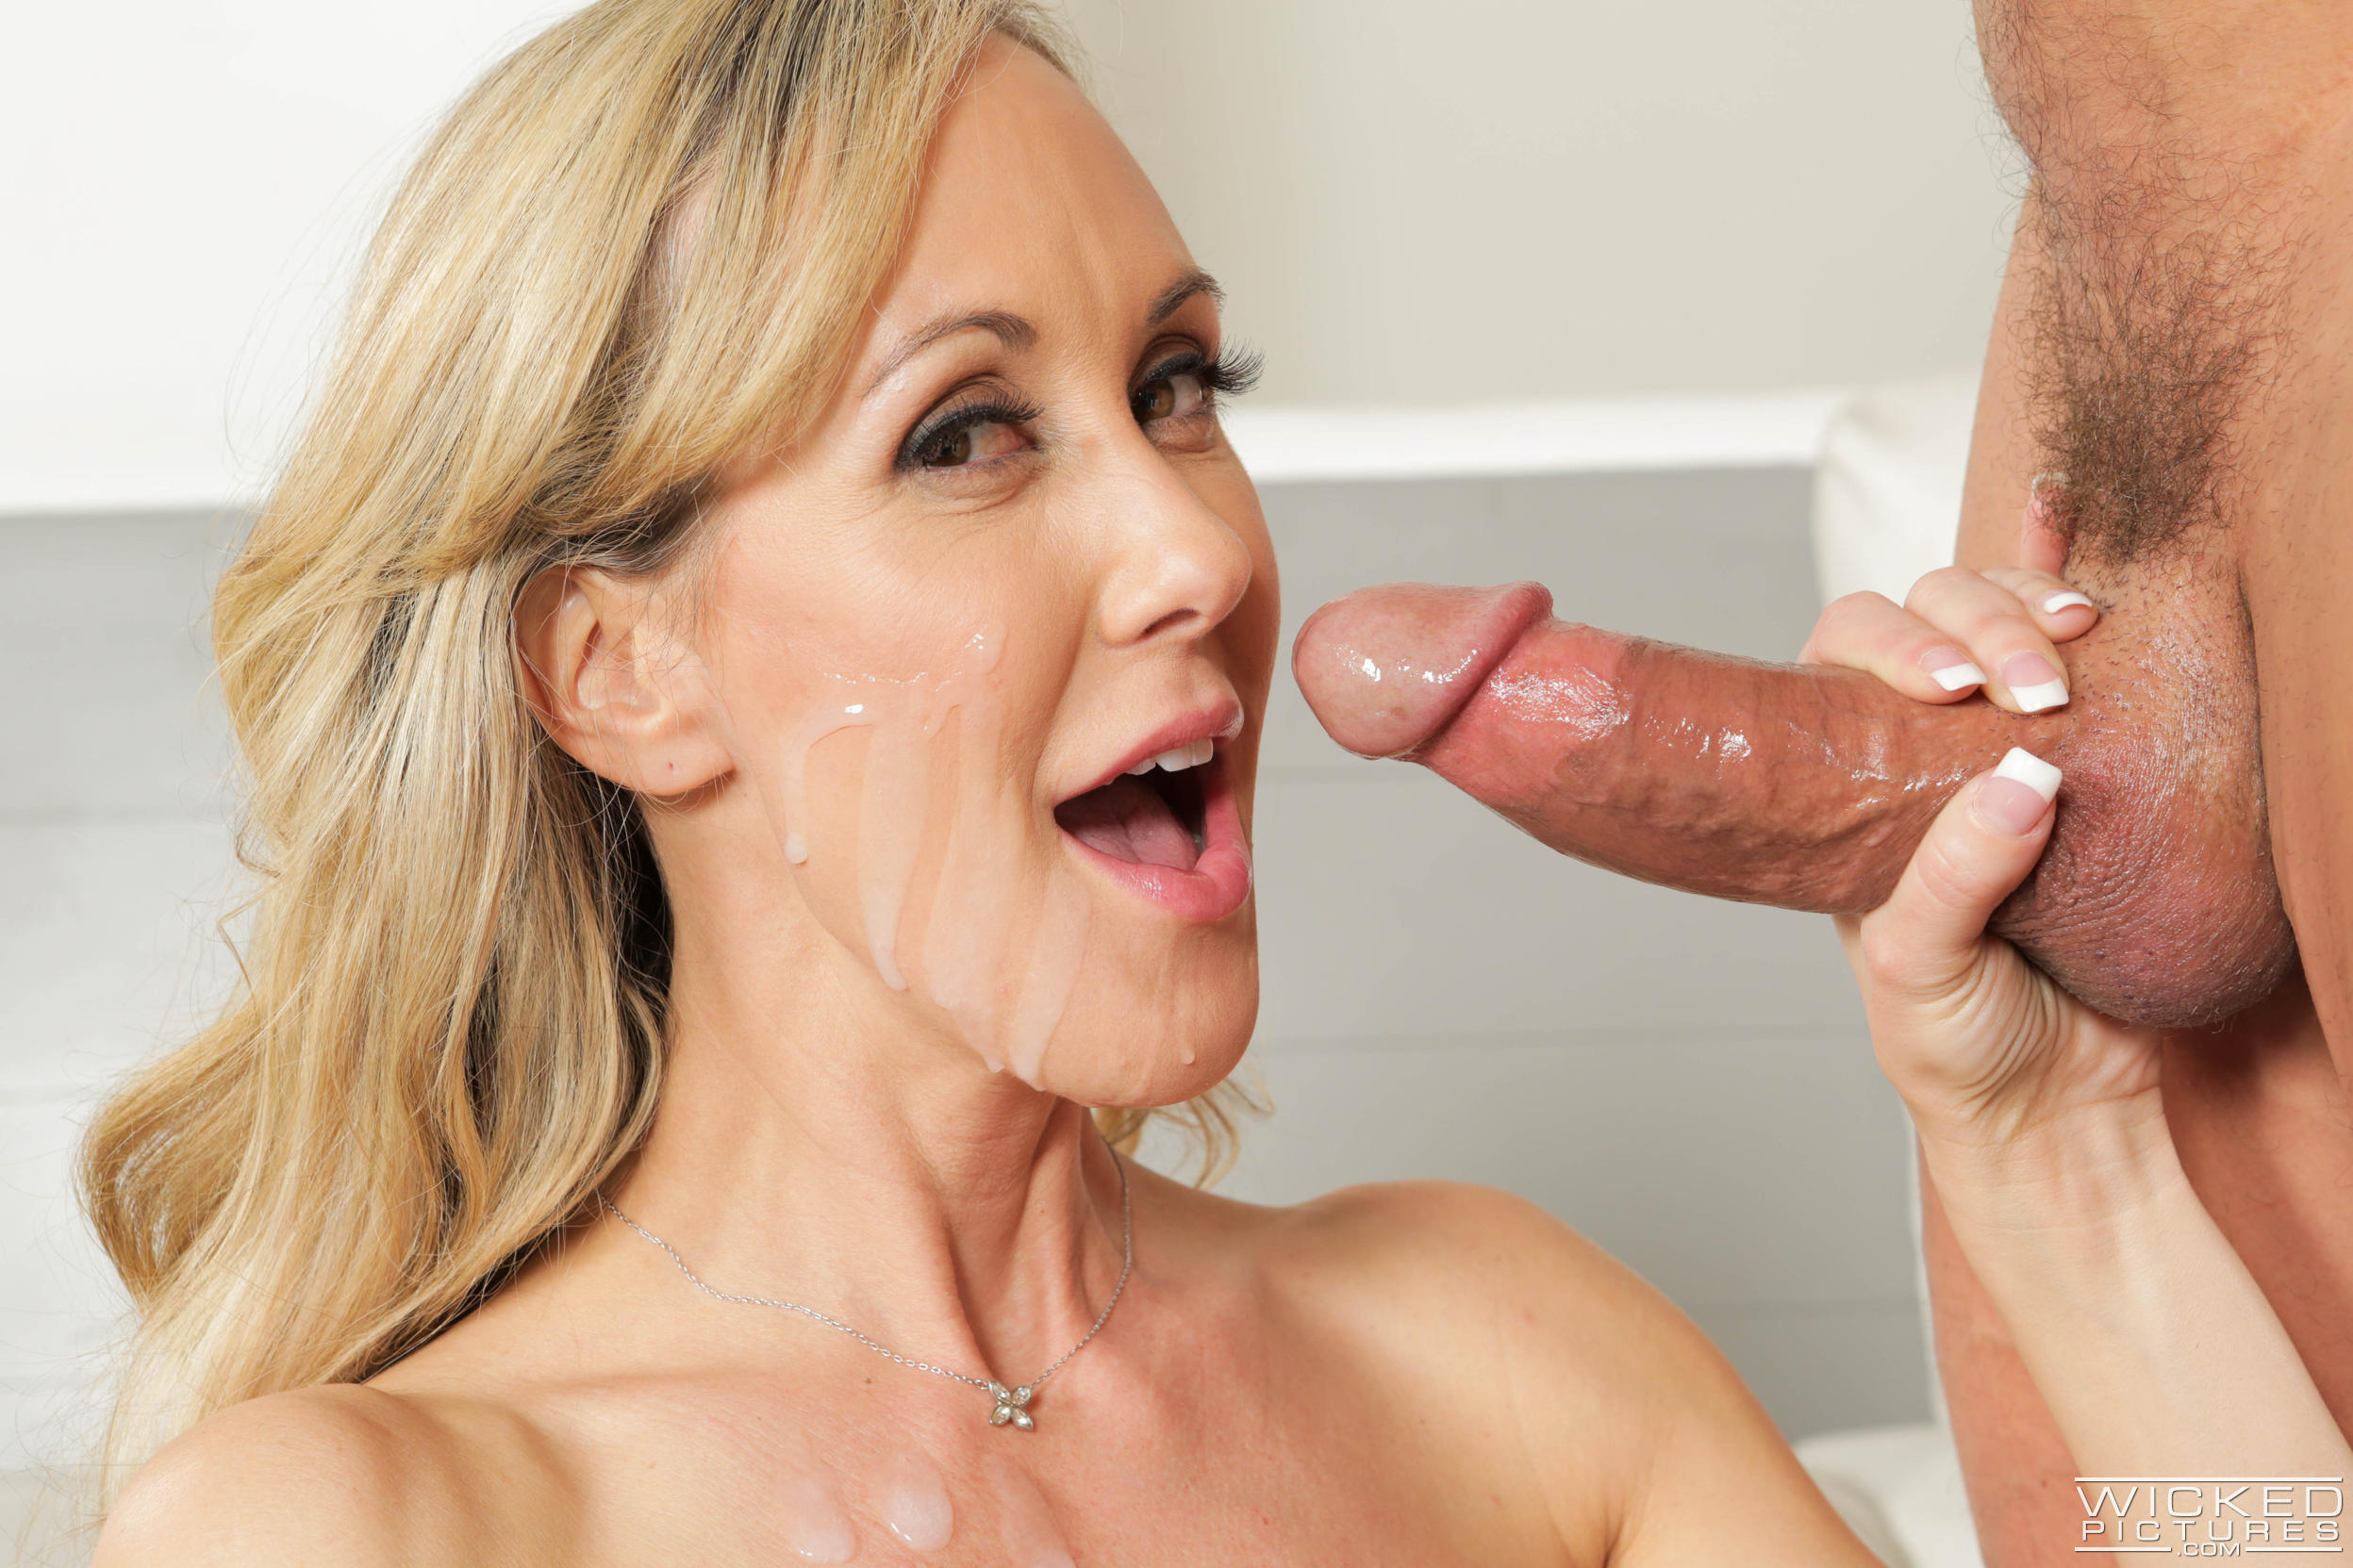 image Lia lor and brandi love busted by her bf